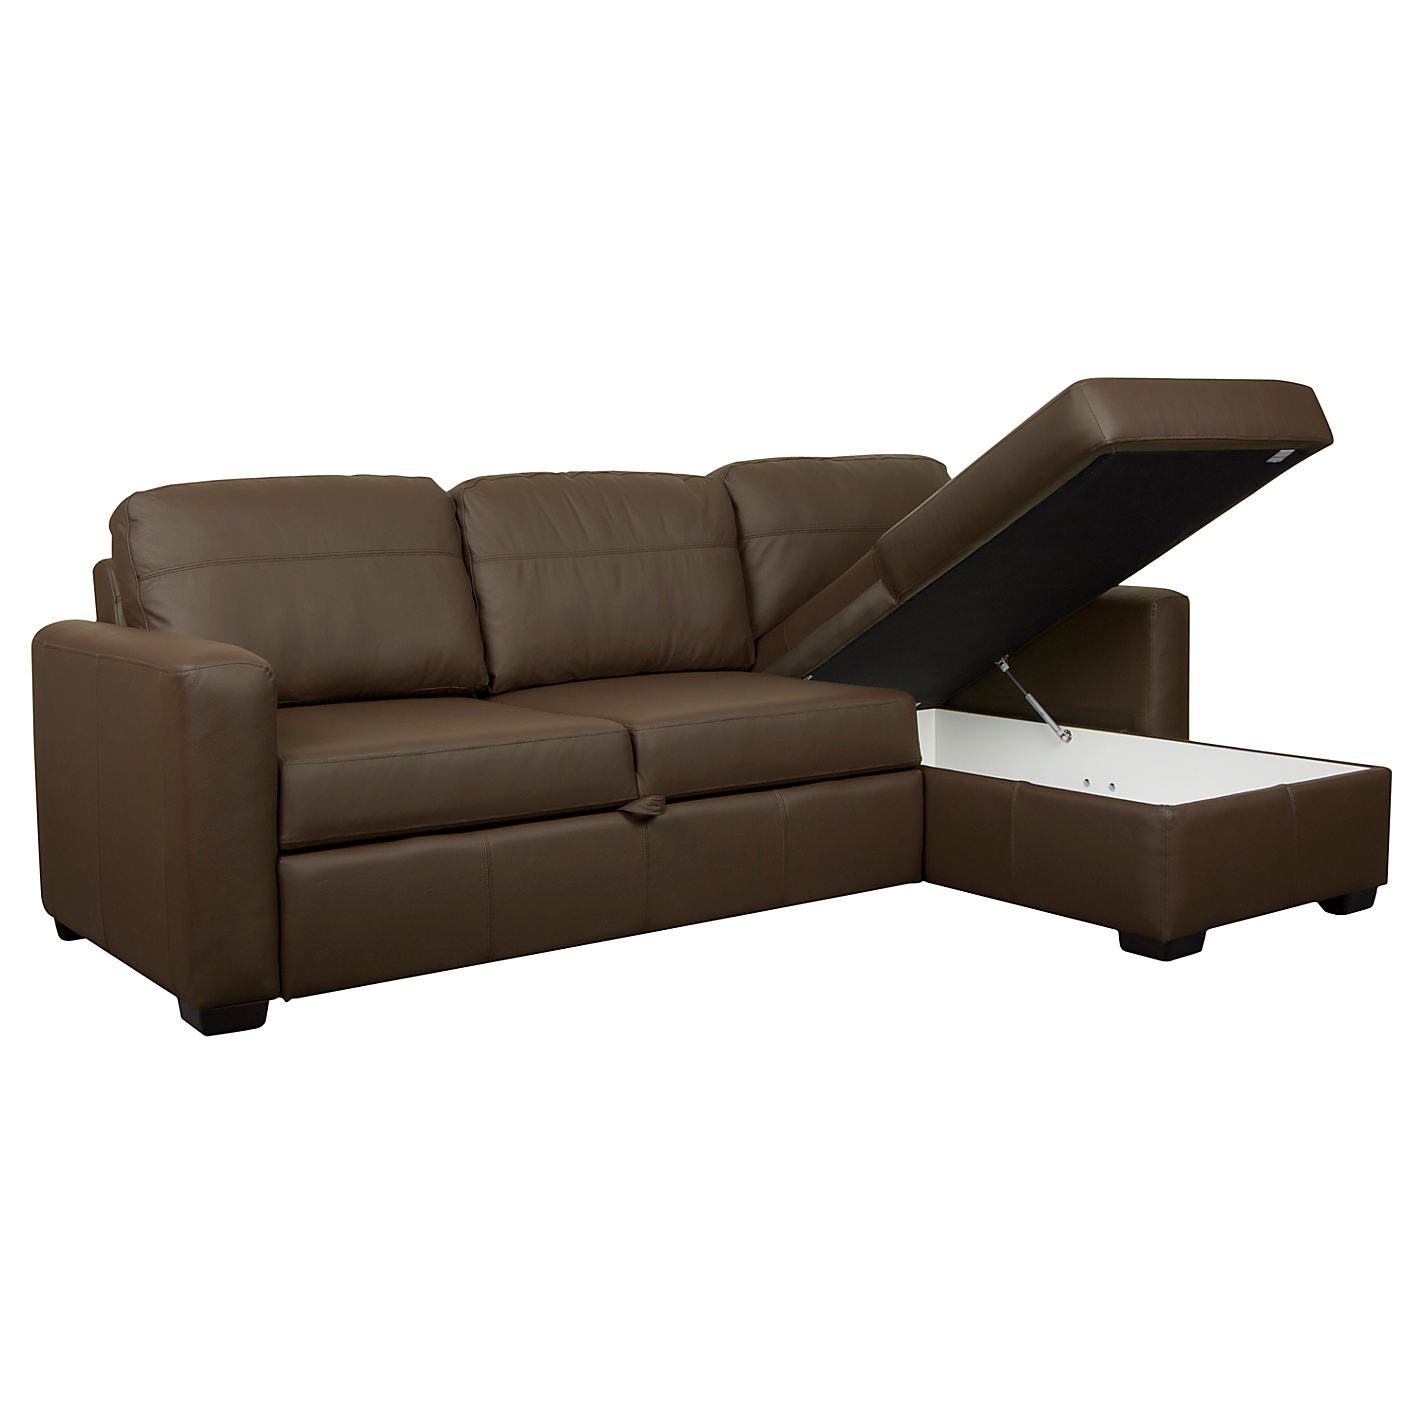 Charmant Leather Corner Sofa Bed John Lewis Www Redglobalmx Org